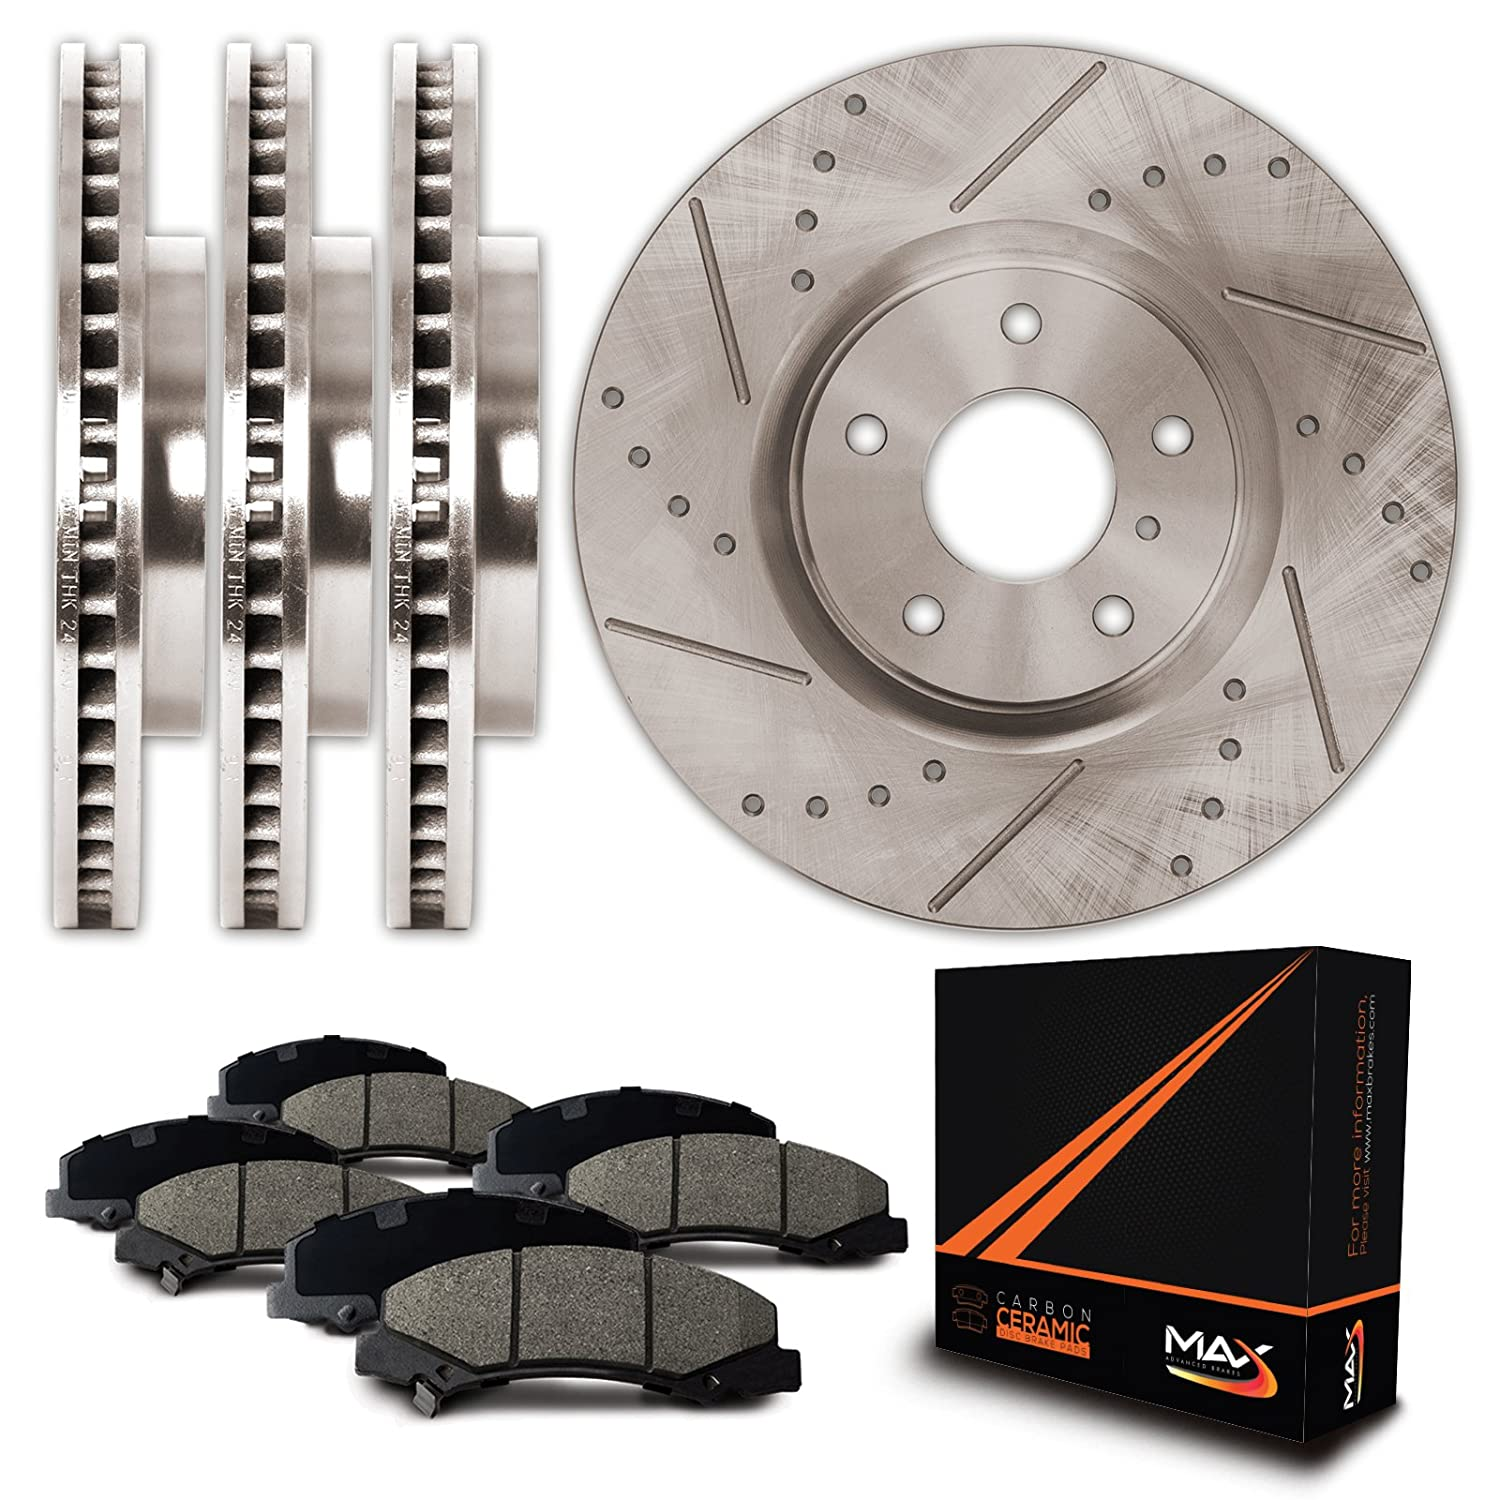 Max Brakes Premium Slotted|Drilled Rotors w/Ceramic Brake Pads Front + Rear Performance Brake Kit KT075233 [Fits:1998-2002 Chevy Camaro | Pontiac Firebird] Max Advanced Brakes